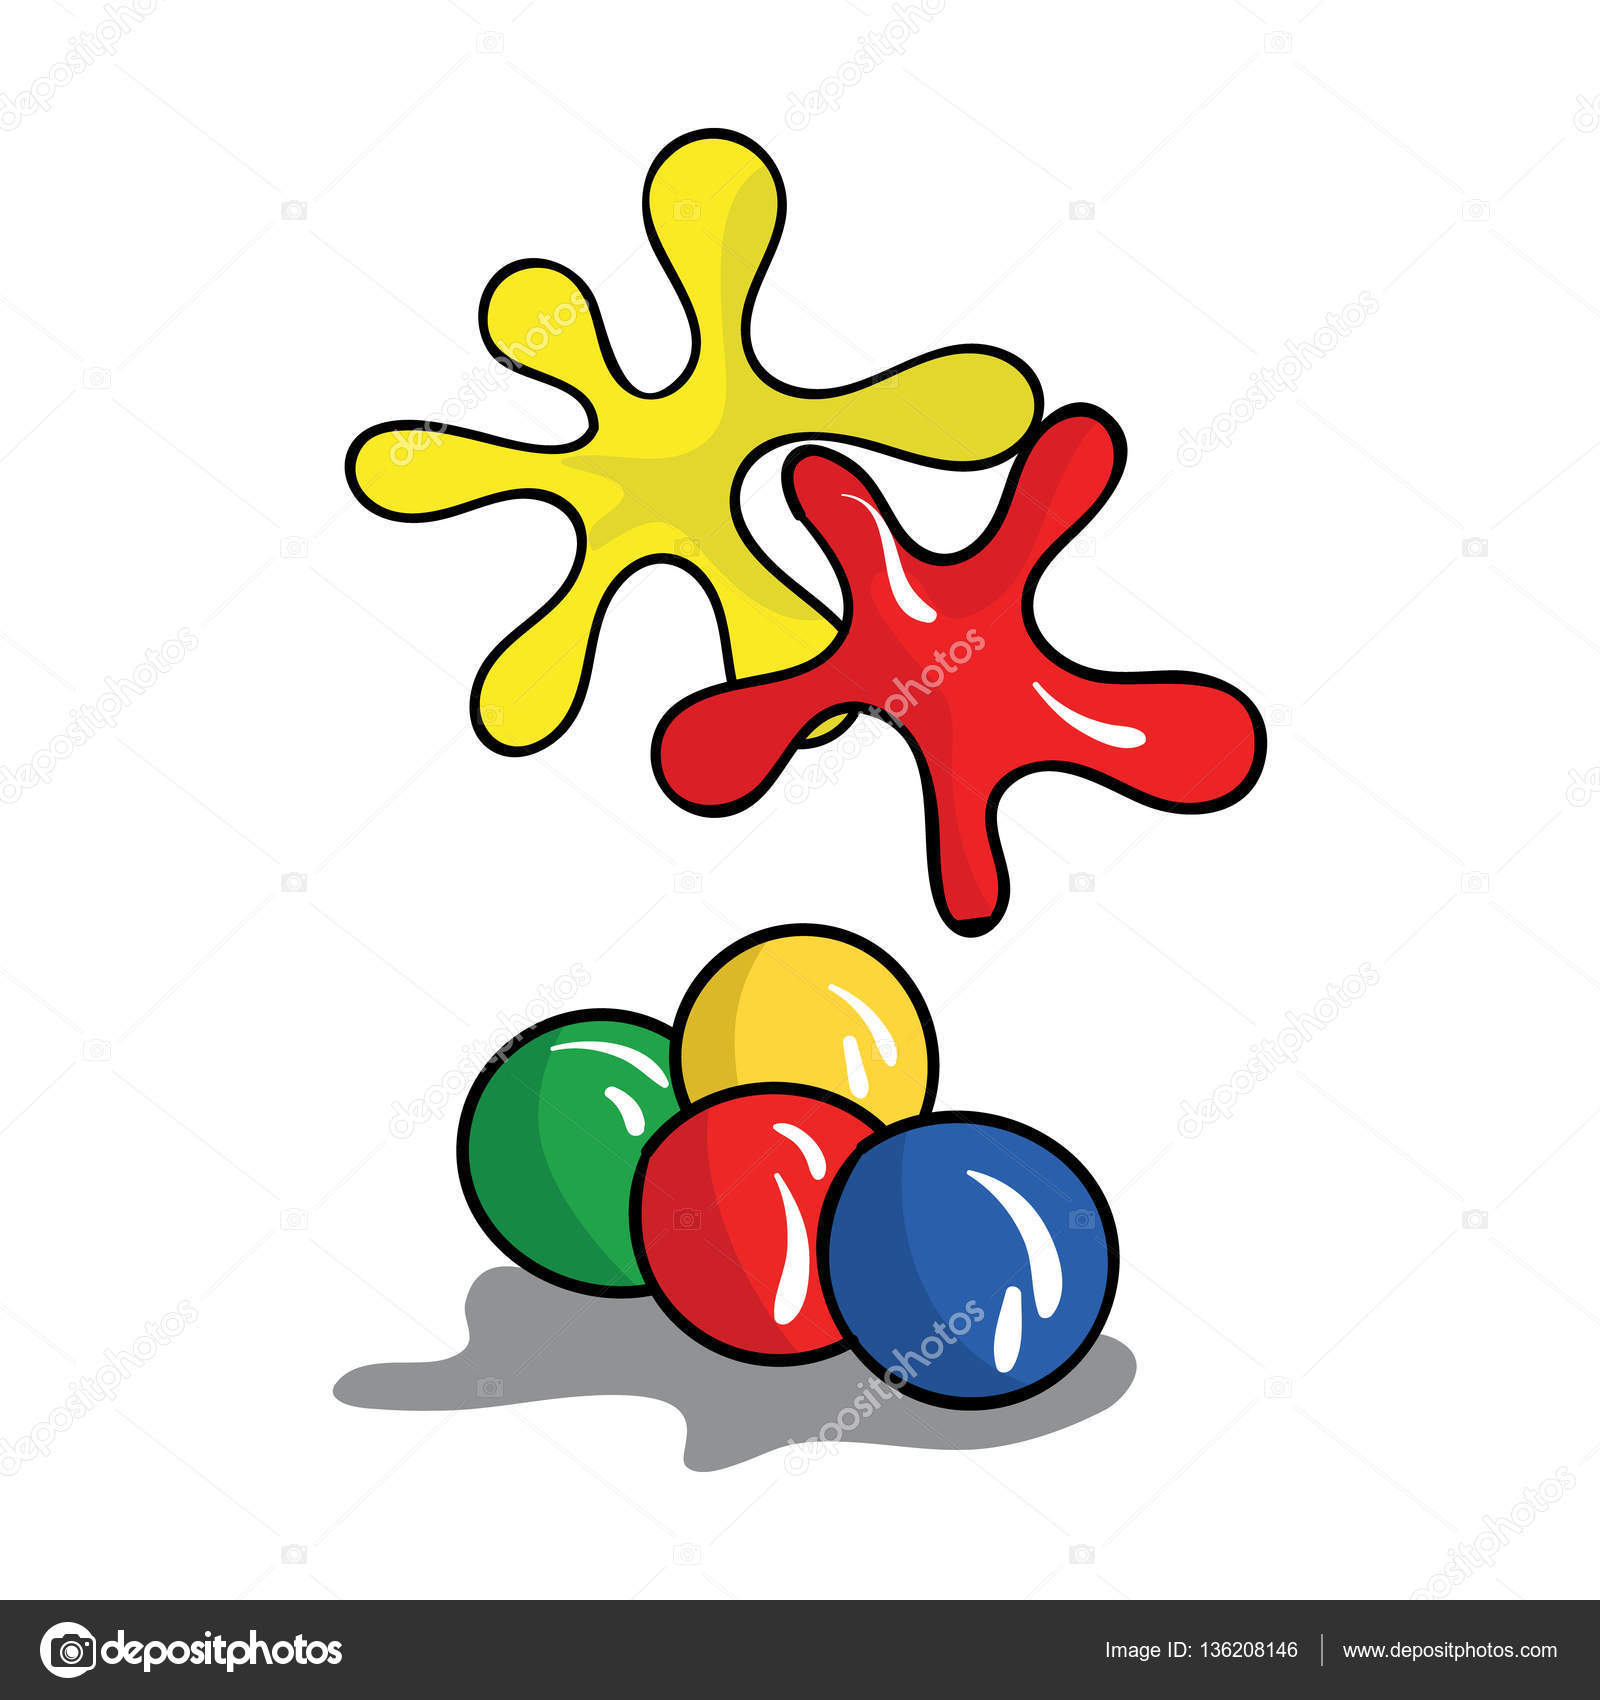 Balls For Paintball Icon In Cartoon Style Isolated On White